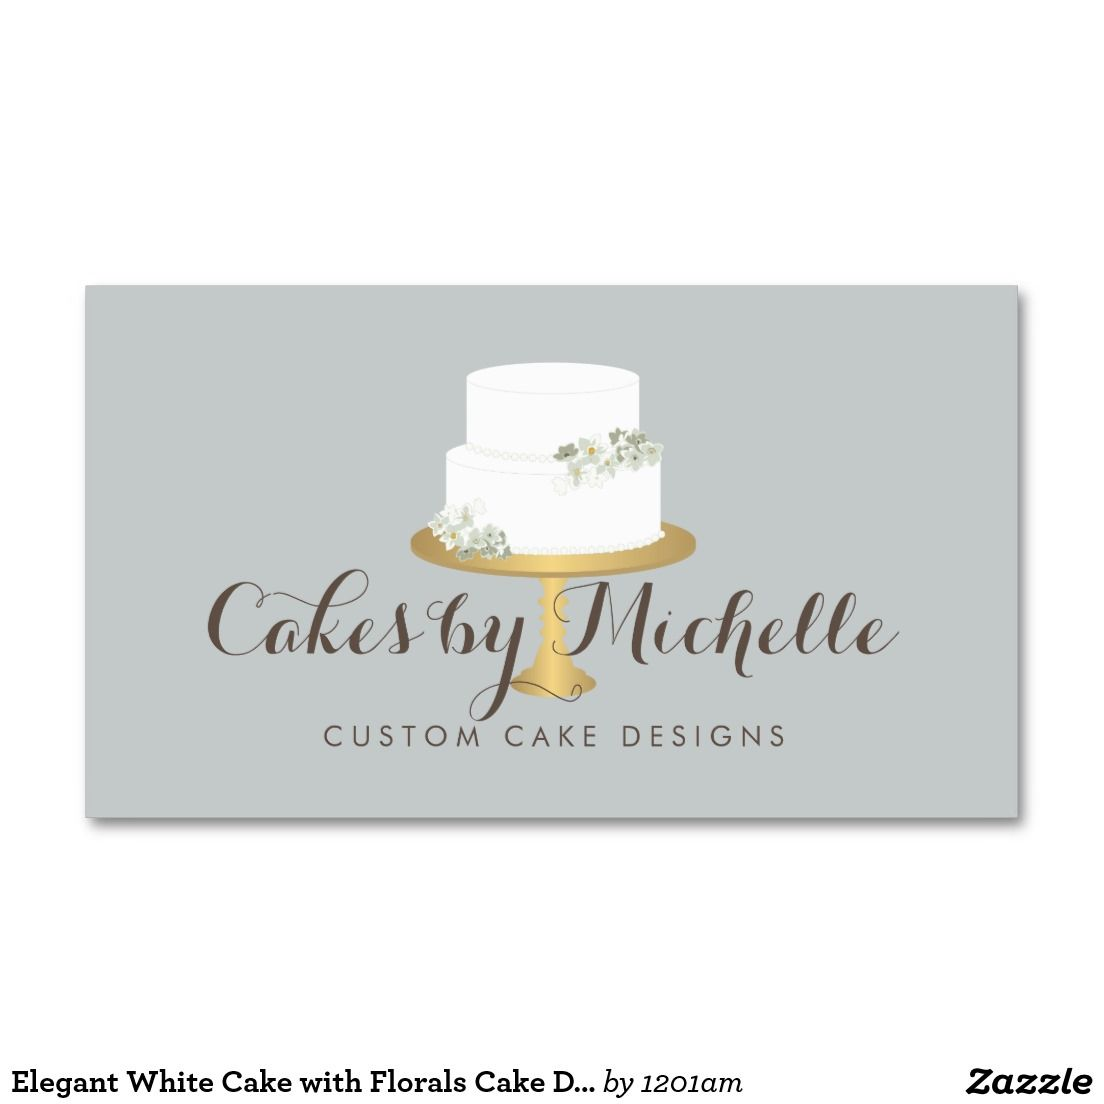 Elegant white cake with florals cake decorating business card card elegant white cake with florals cake decorating business card reheart Image collections